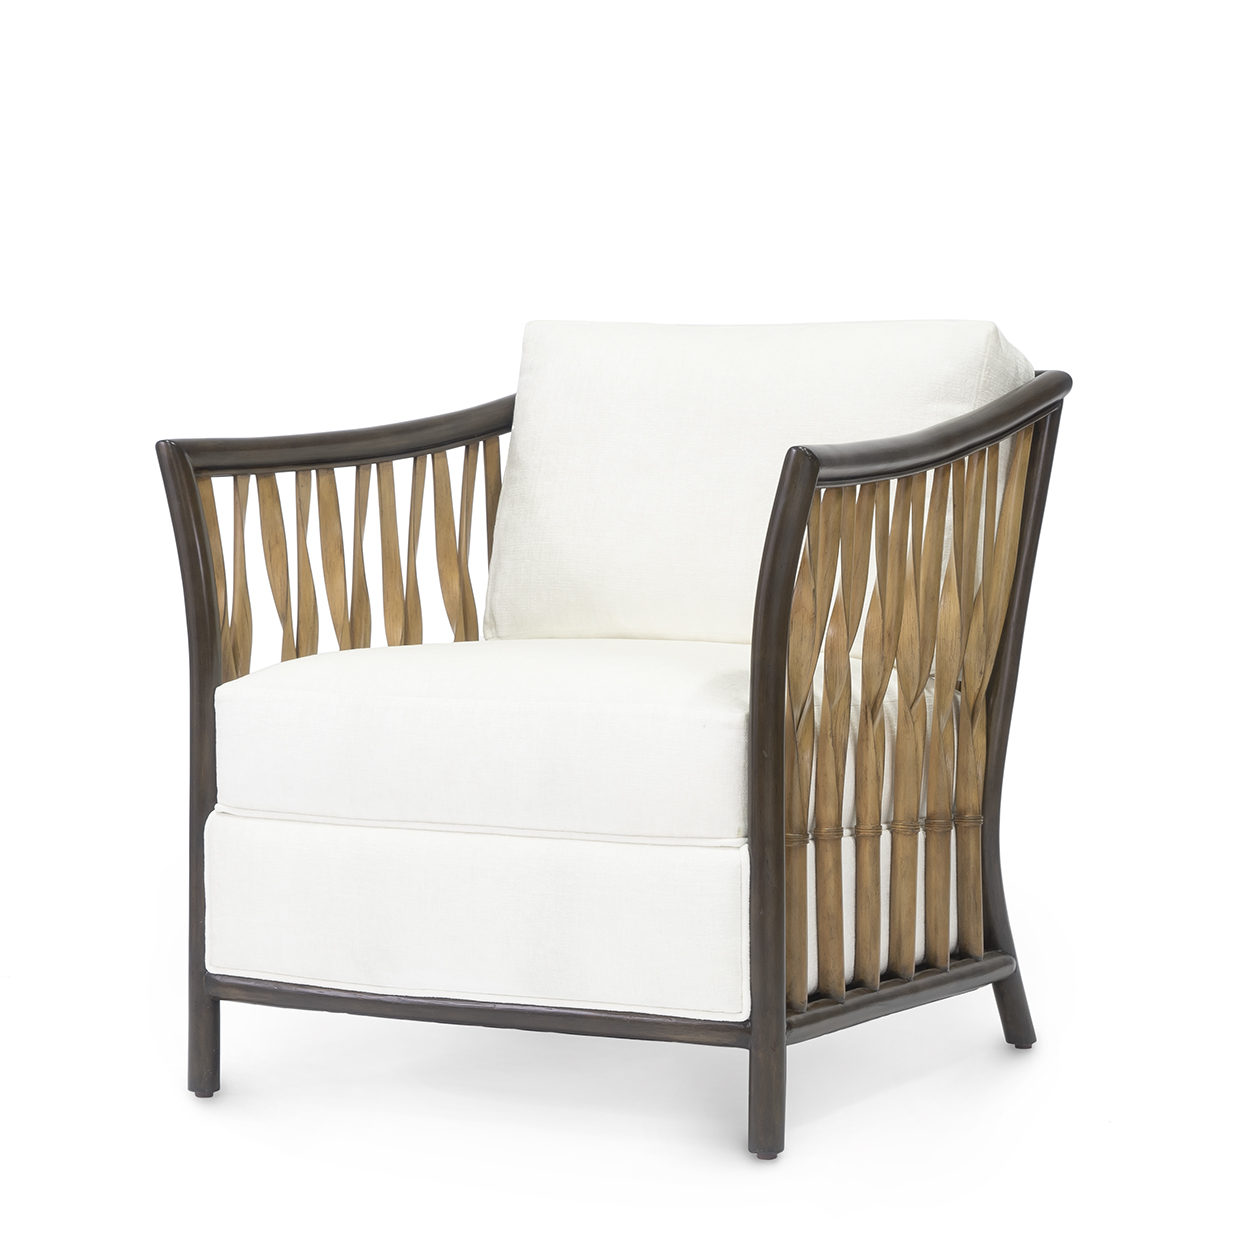 Description. LINCOLN LOUNGE CHAIR